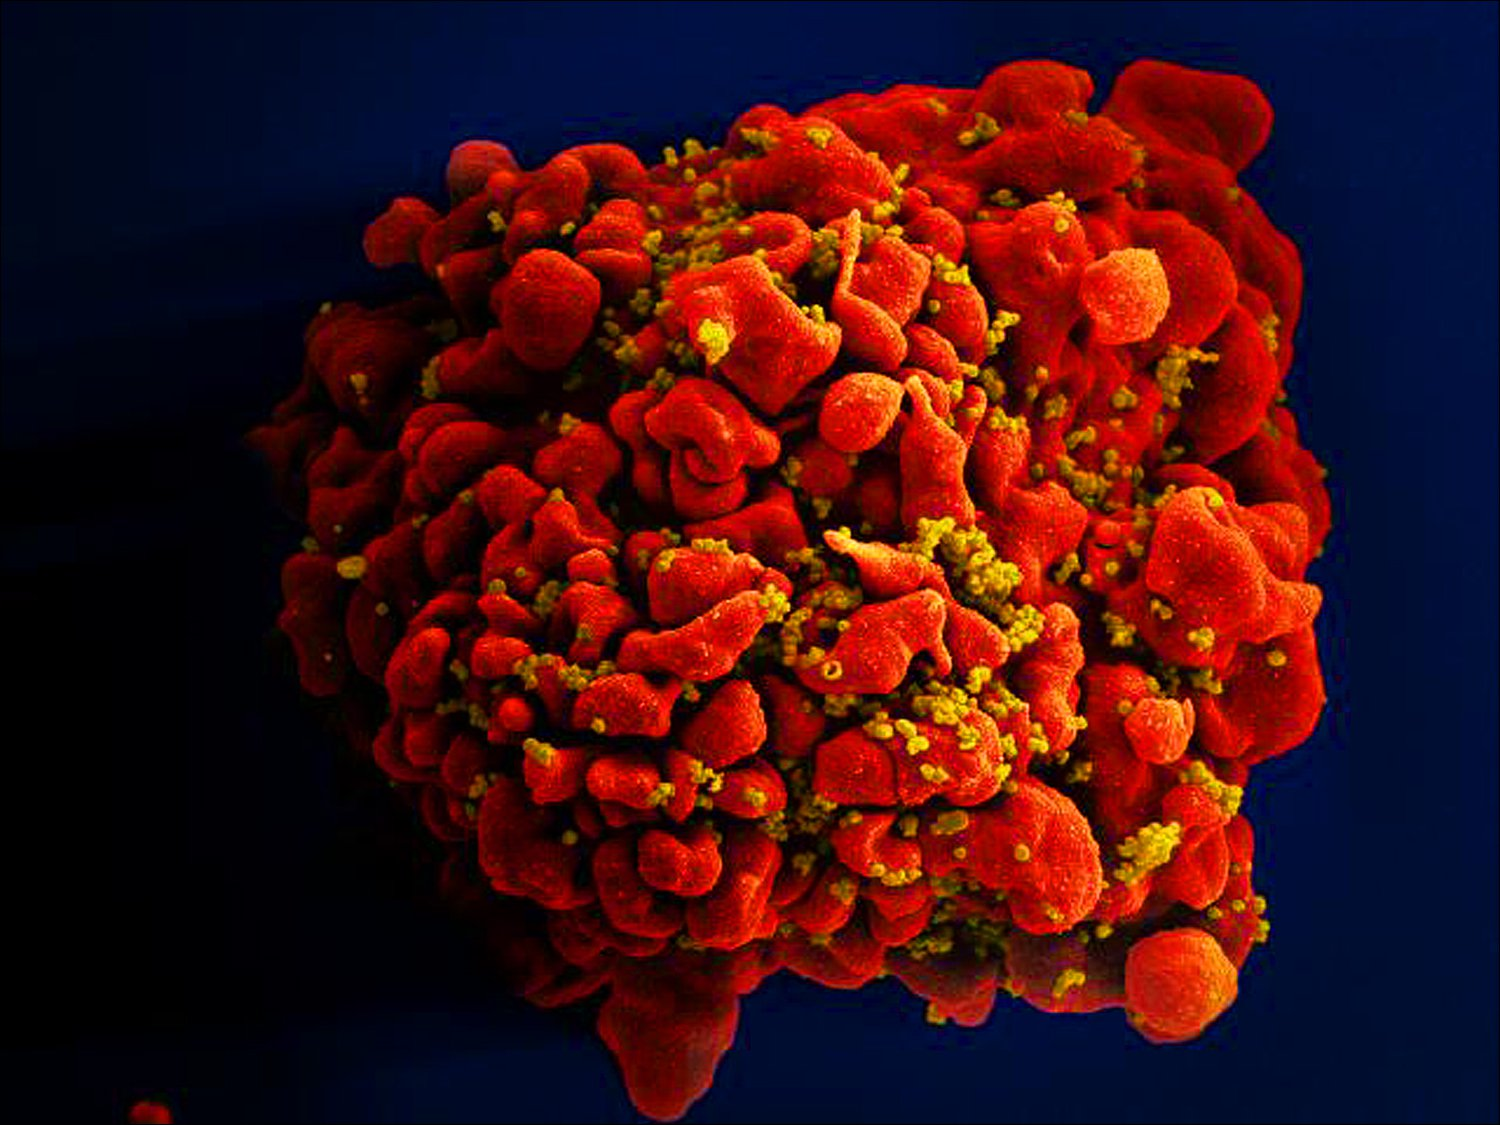 Image of an H9-T cell infected with HIV particles